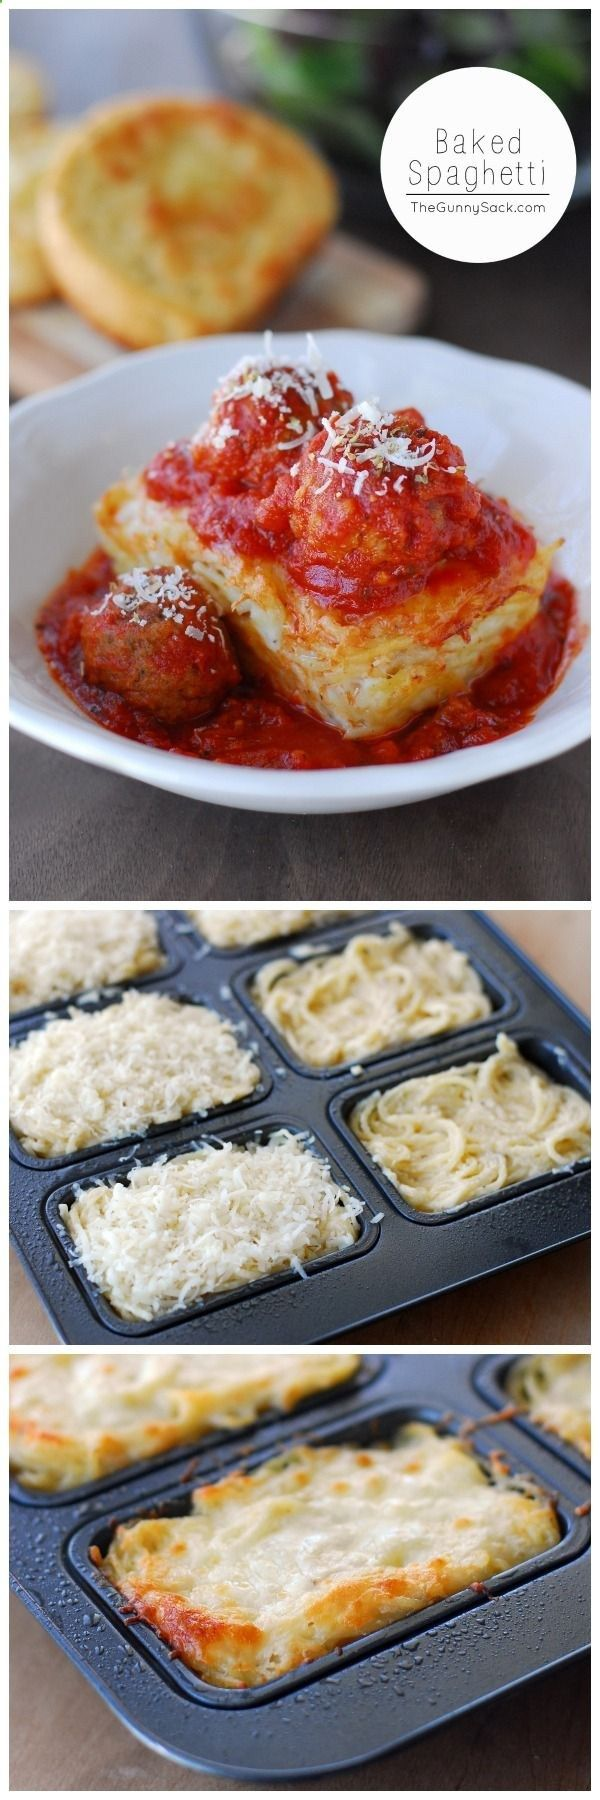 Baked Spaghetti recipe for mini loaves of creamy Alfredo baked spaghetti topped with meatballs and marinara sauce. Apartment food idea!!!